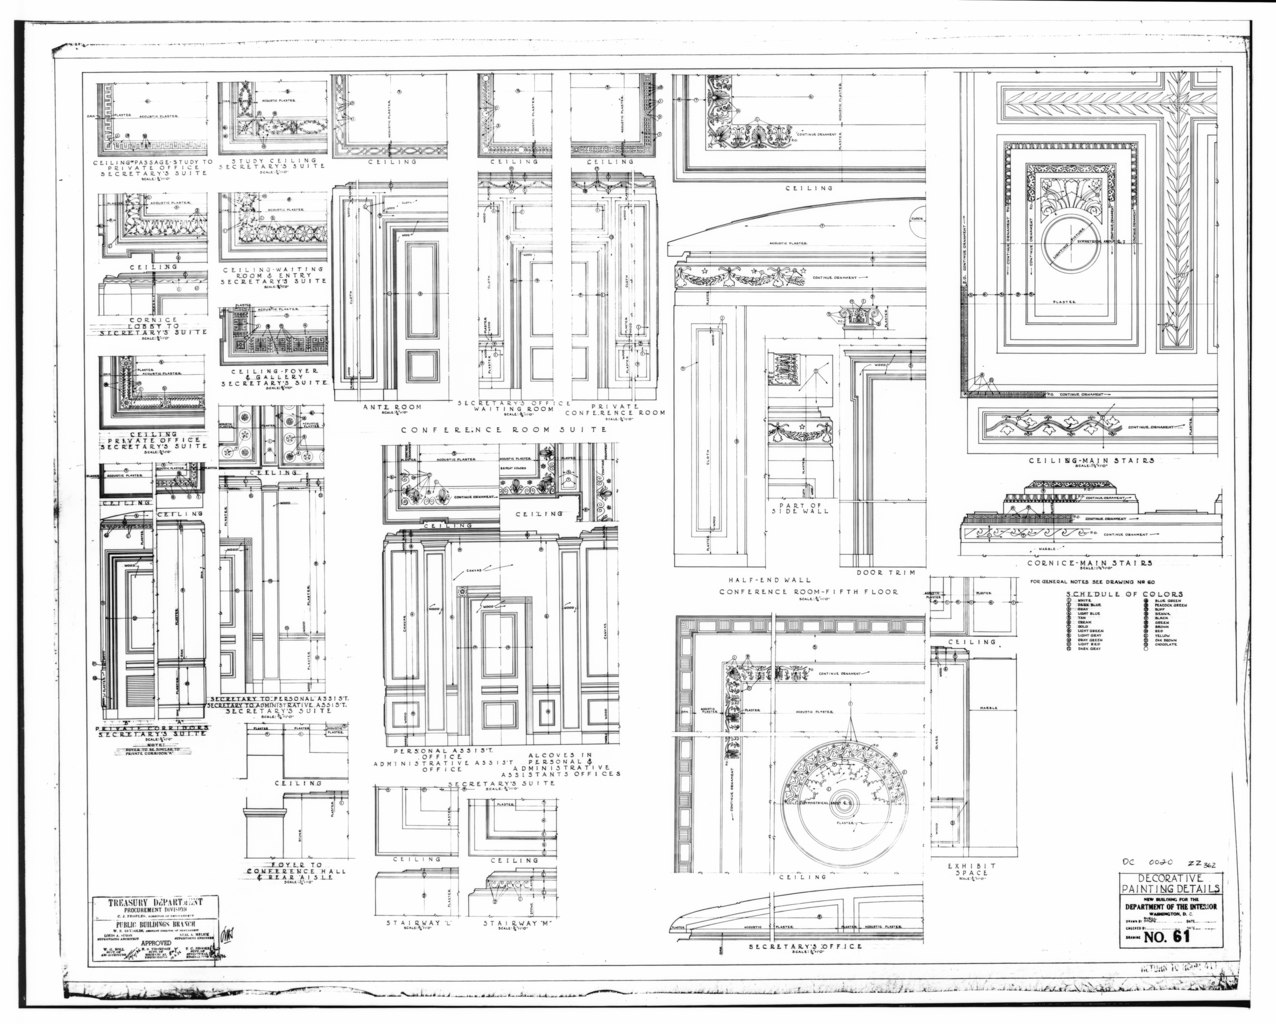 File Photocopy Of Measured Drawing From National Record